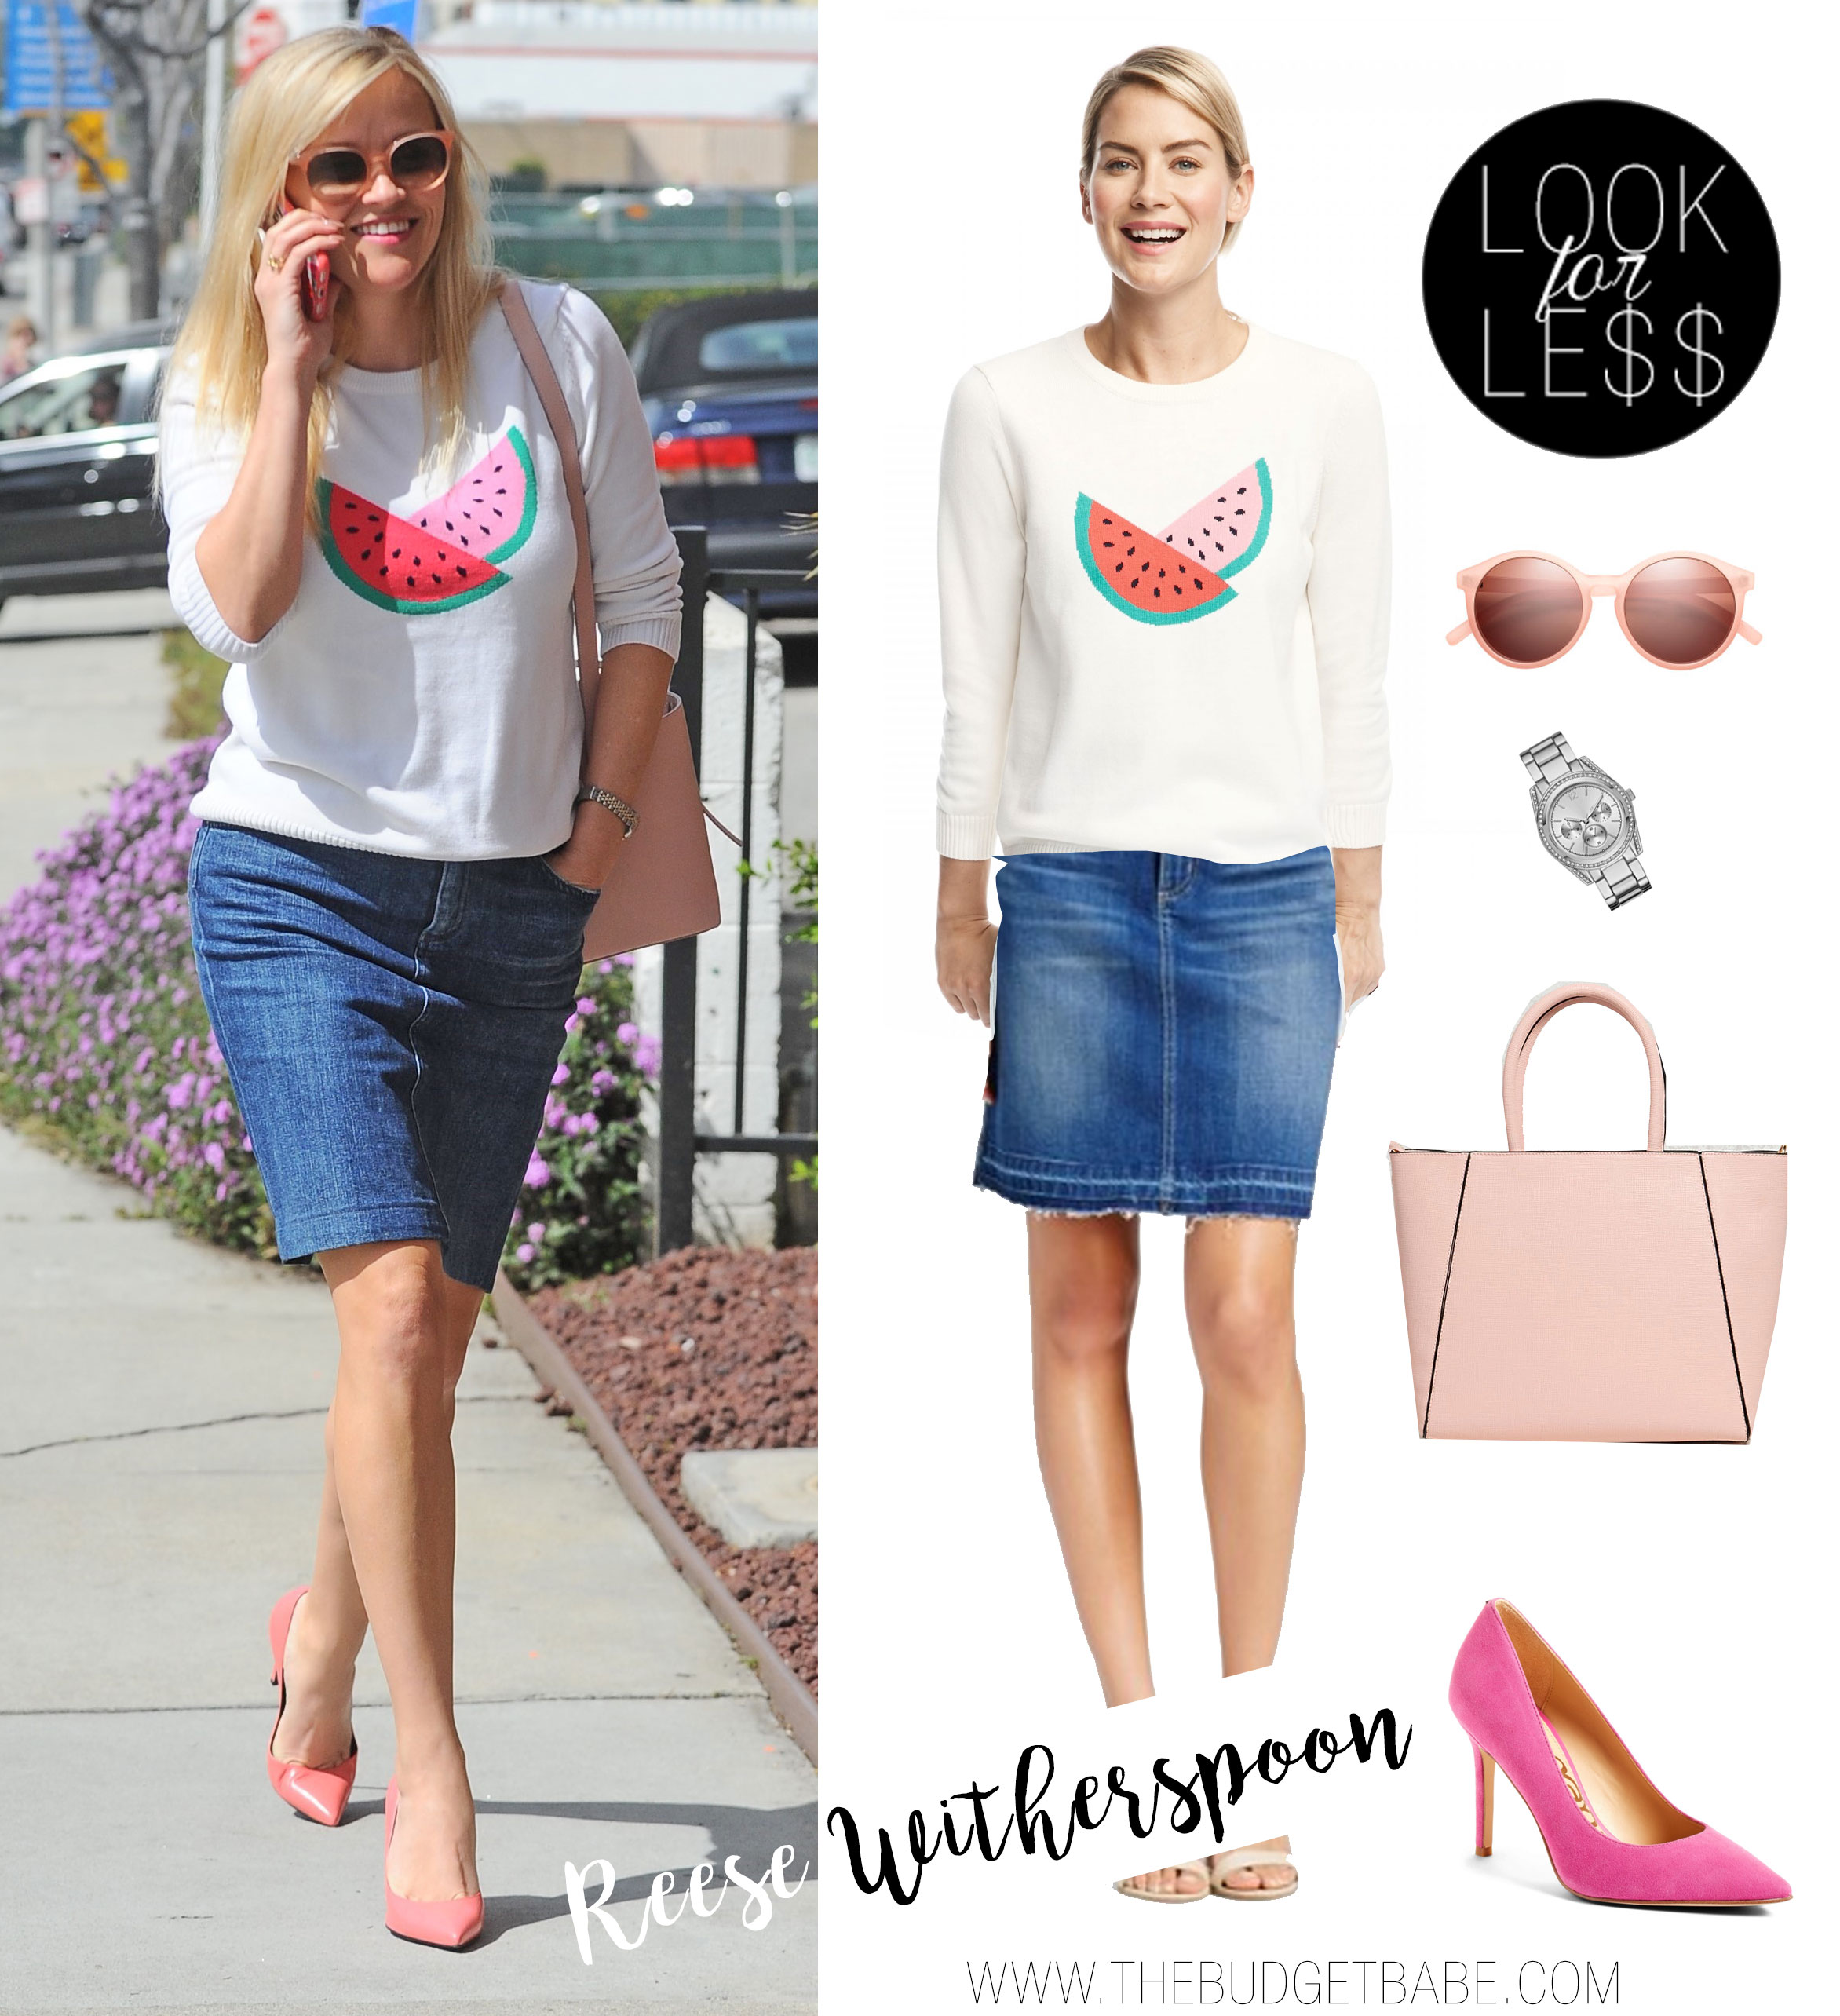 Reese Witherspoon wears a watermelon sweater with a denim skirt and pink accessories.